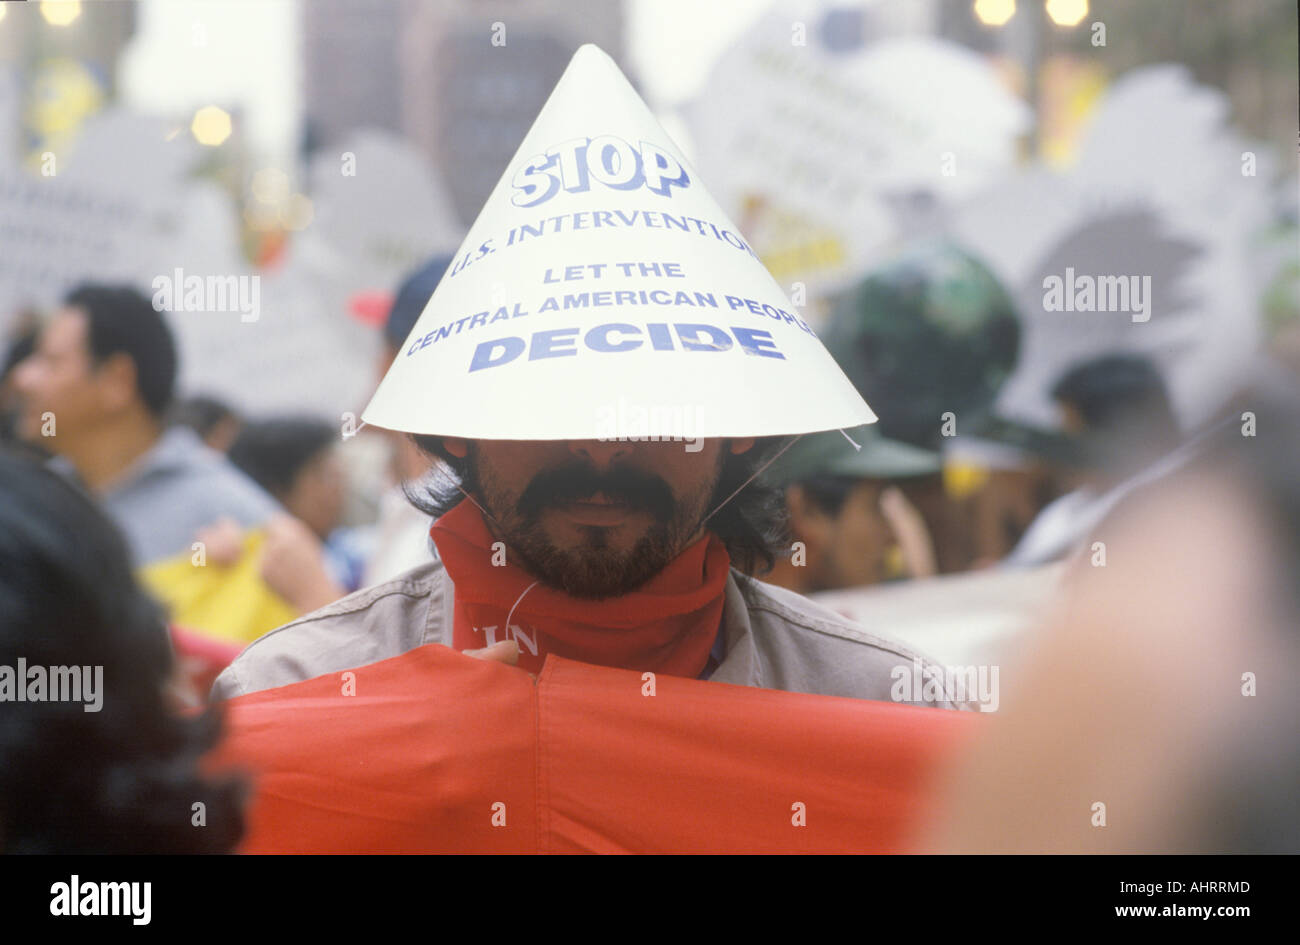 Protesting U S intervention in Central America Los Angeles California Stock Photo